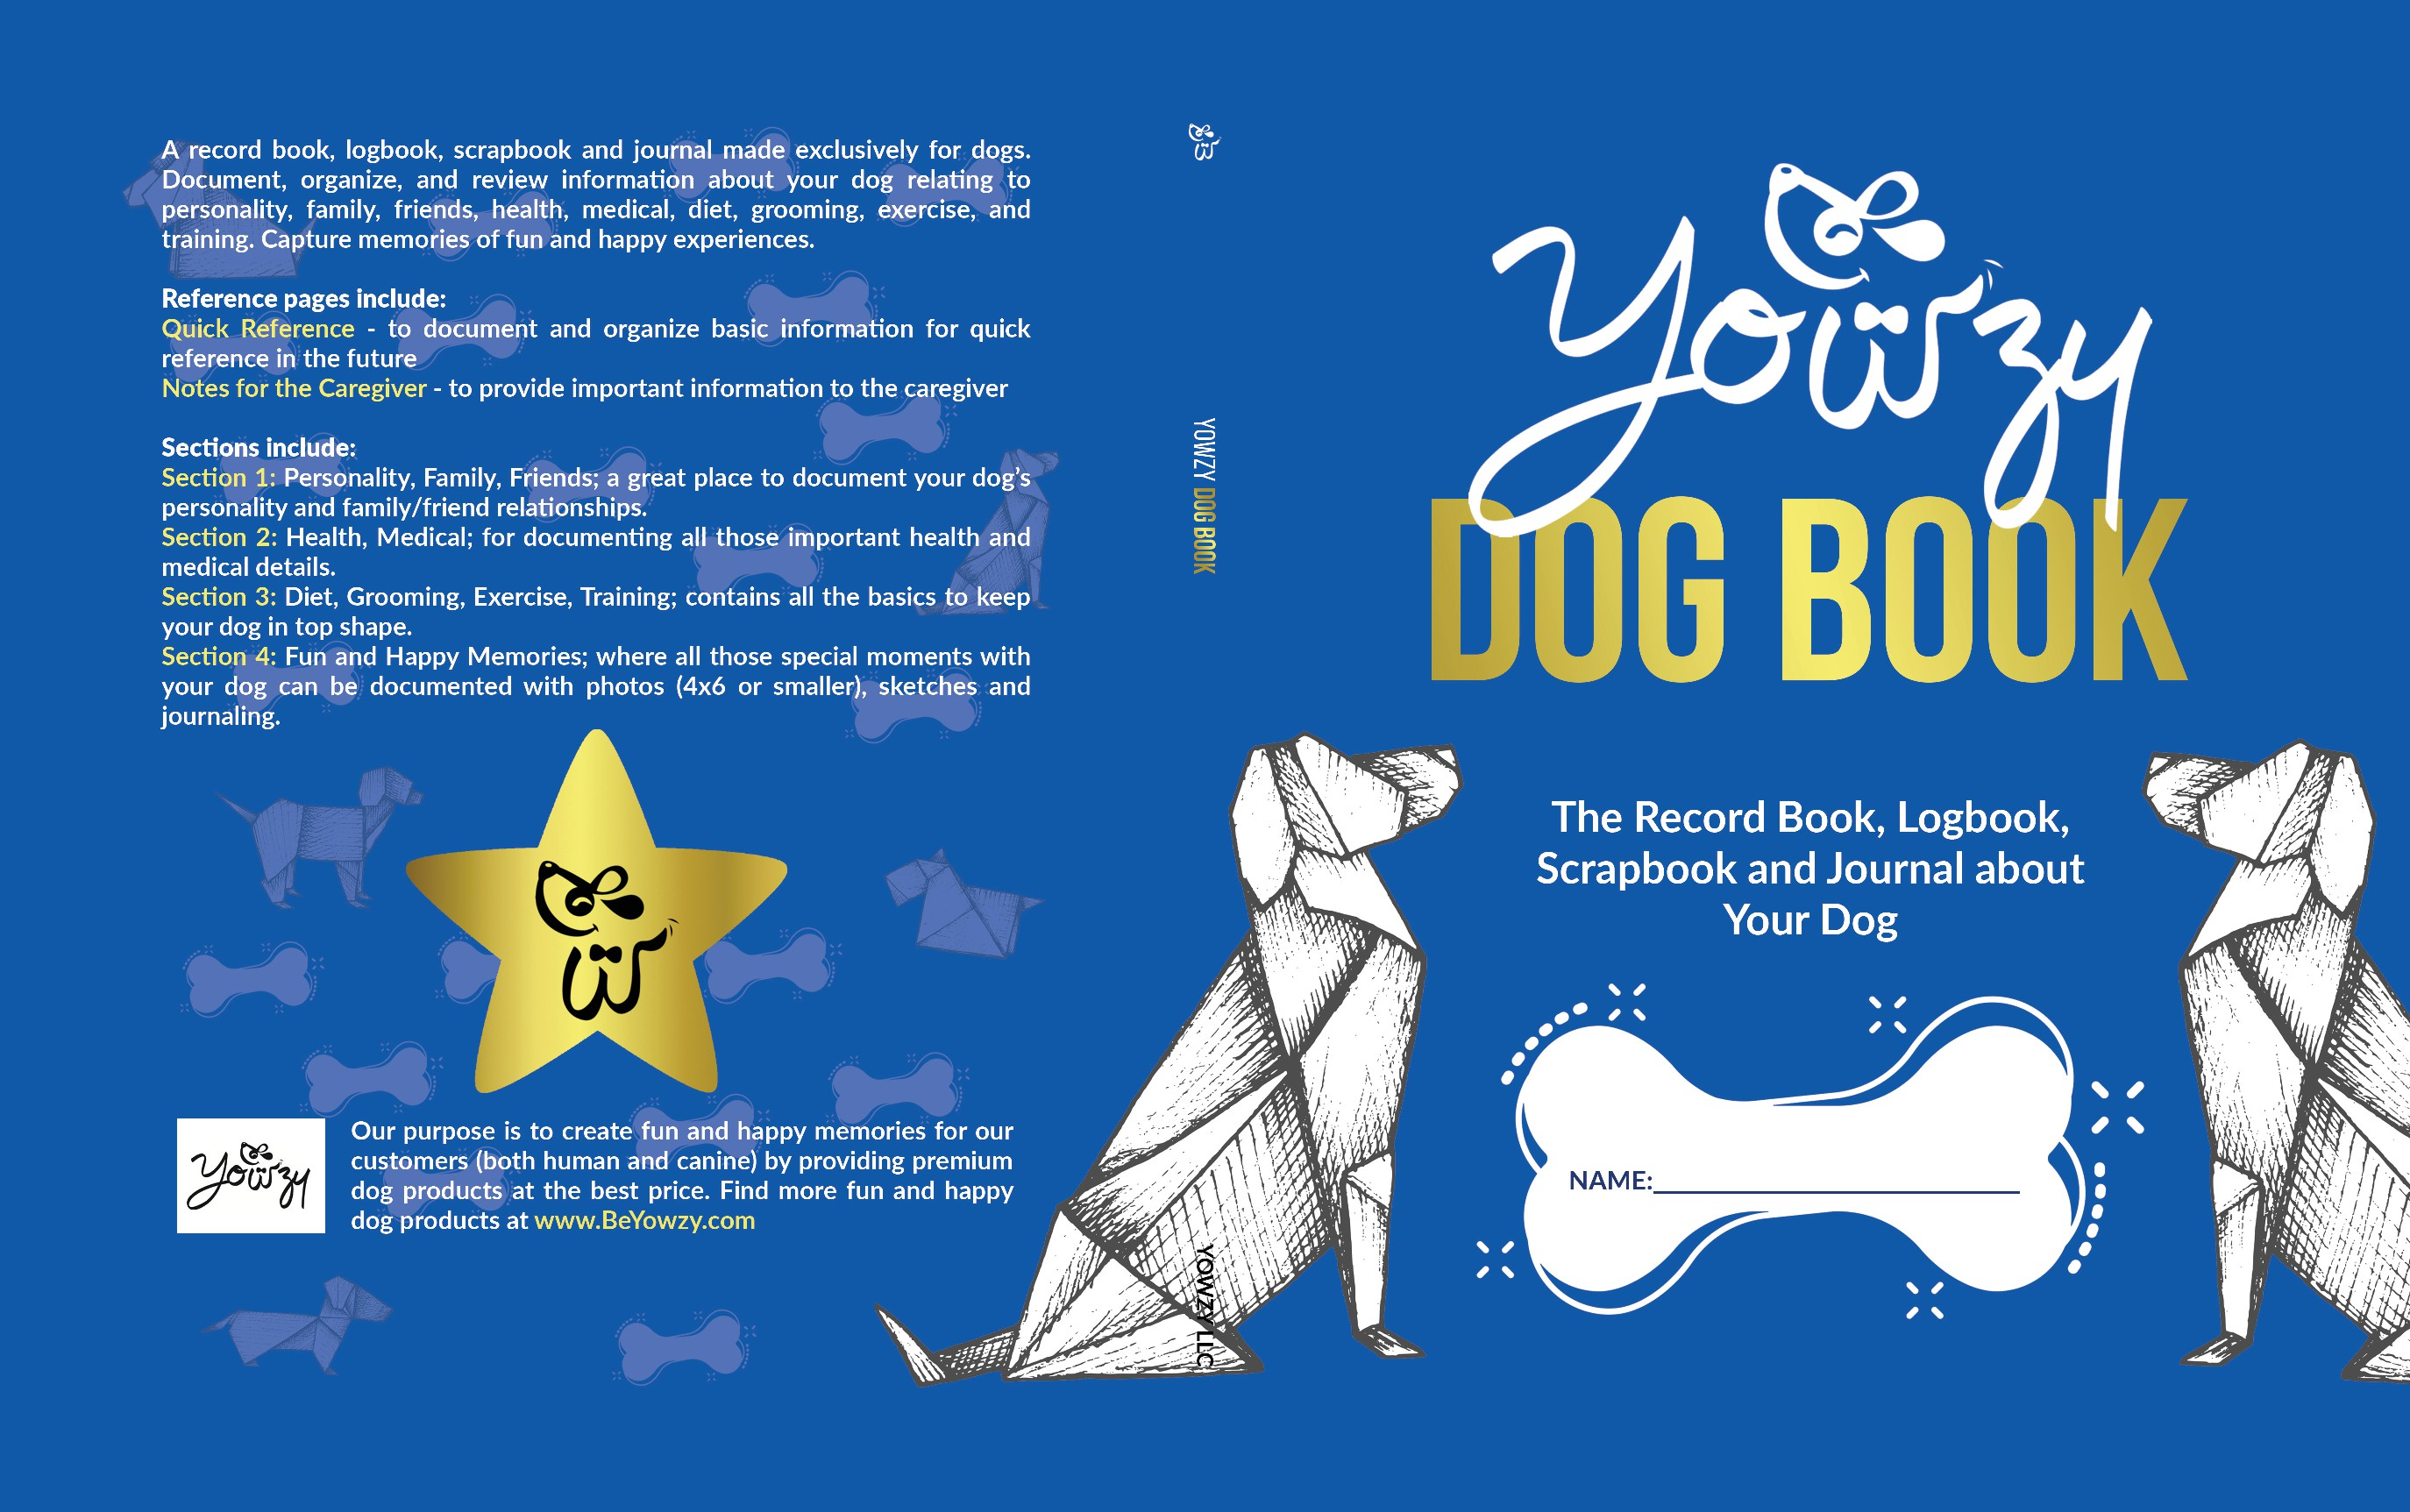 Design the cover of the best dog book ever!